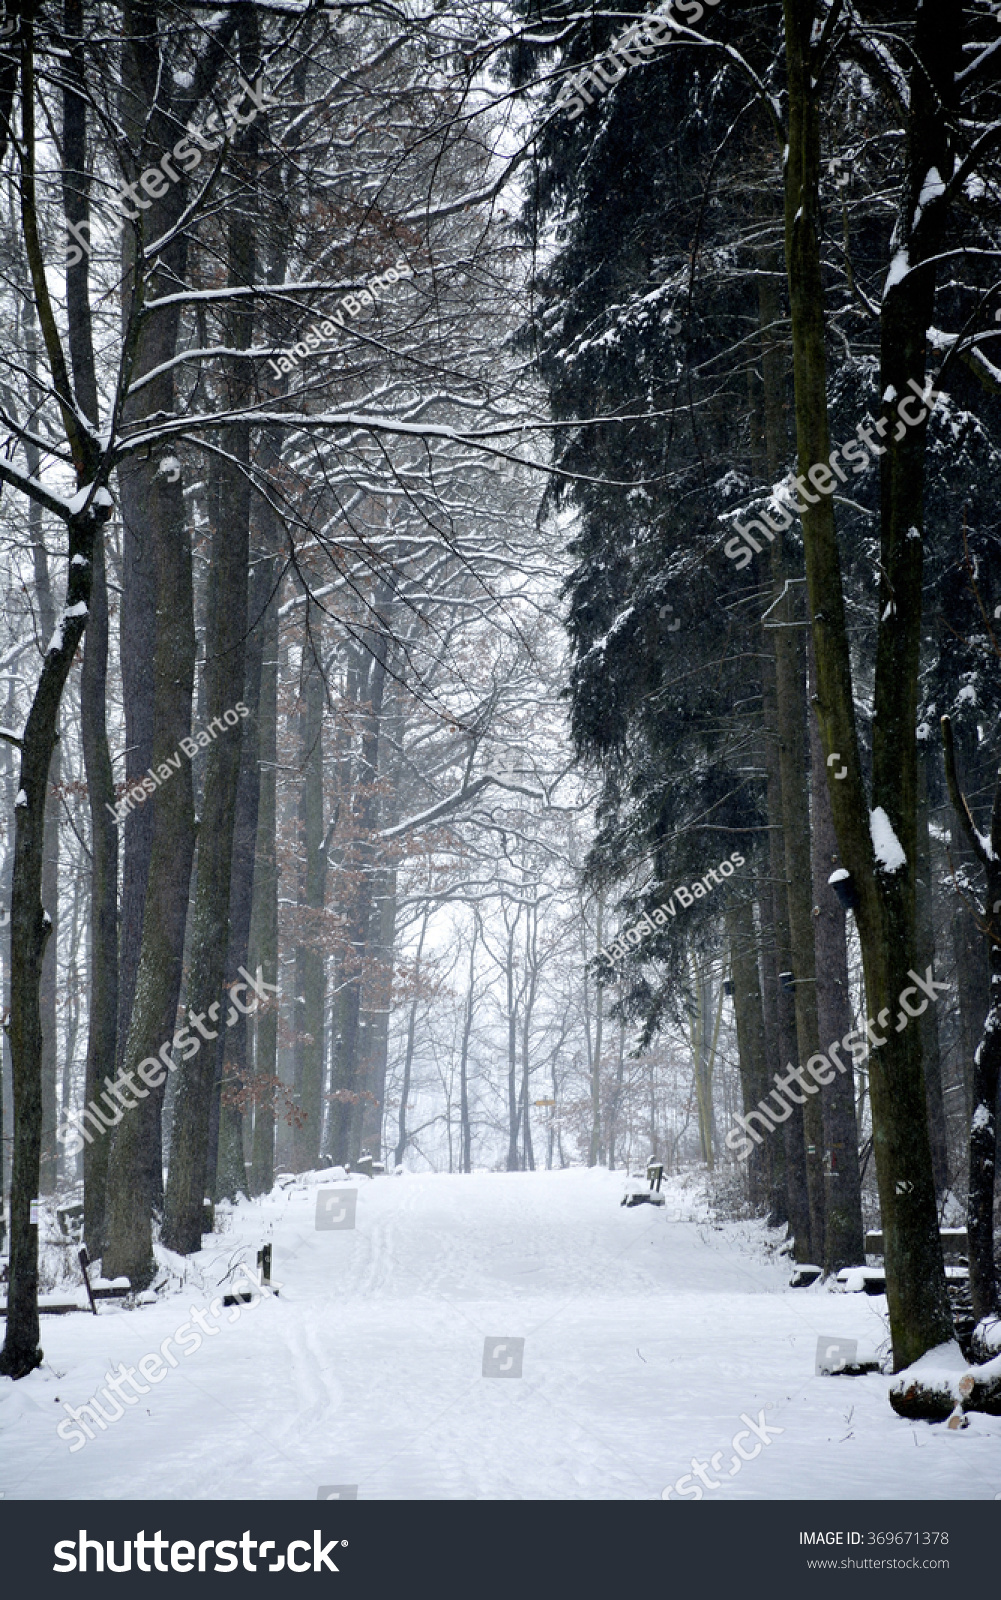 snow winter white trees black forest scenery blackandwhite ... |Winter Forest Black And White